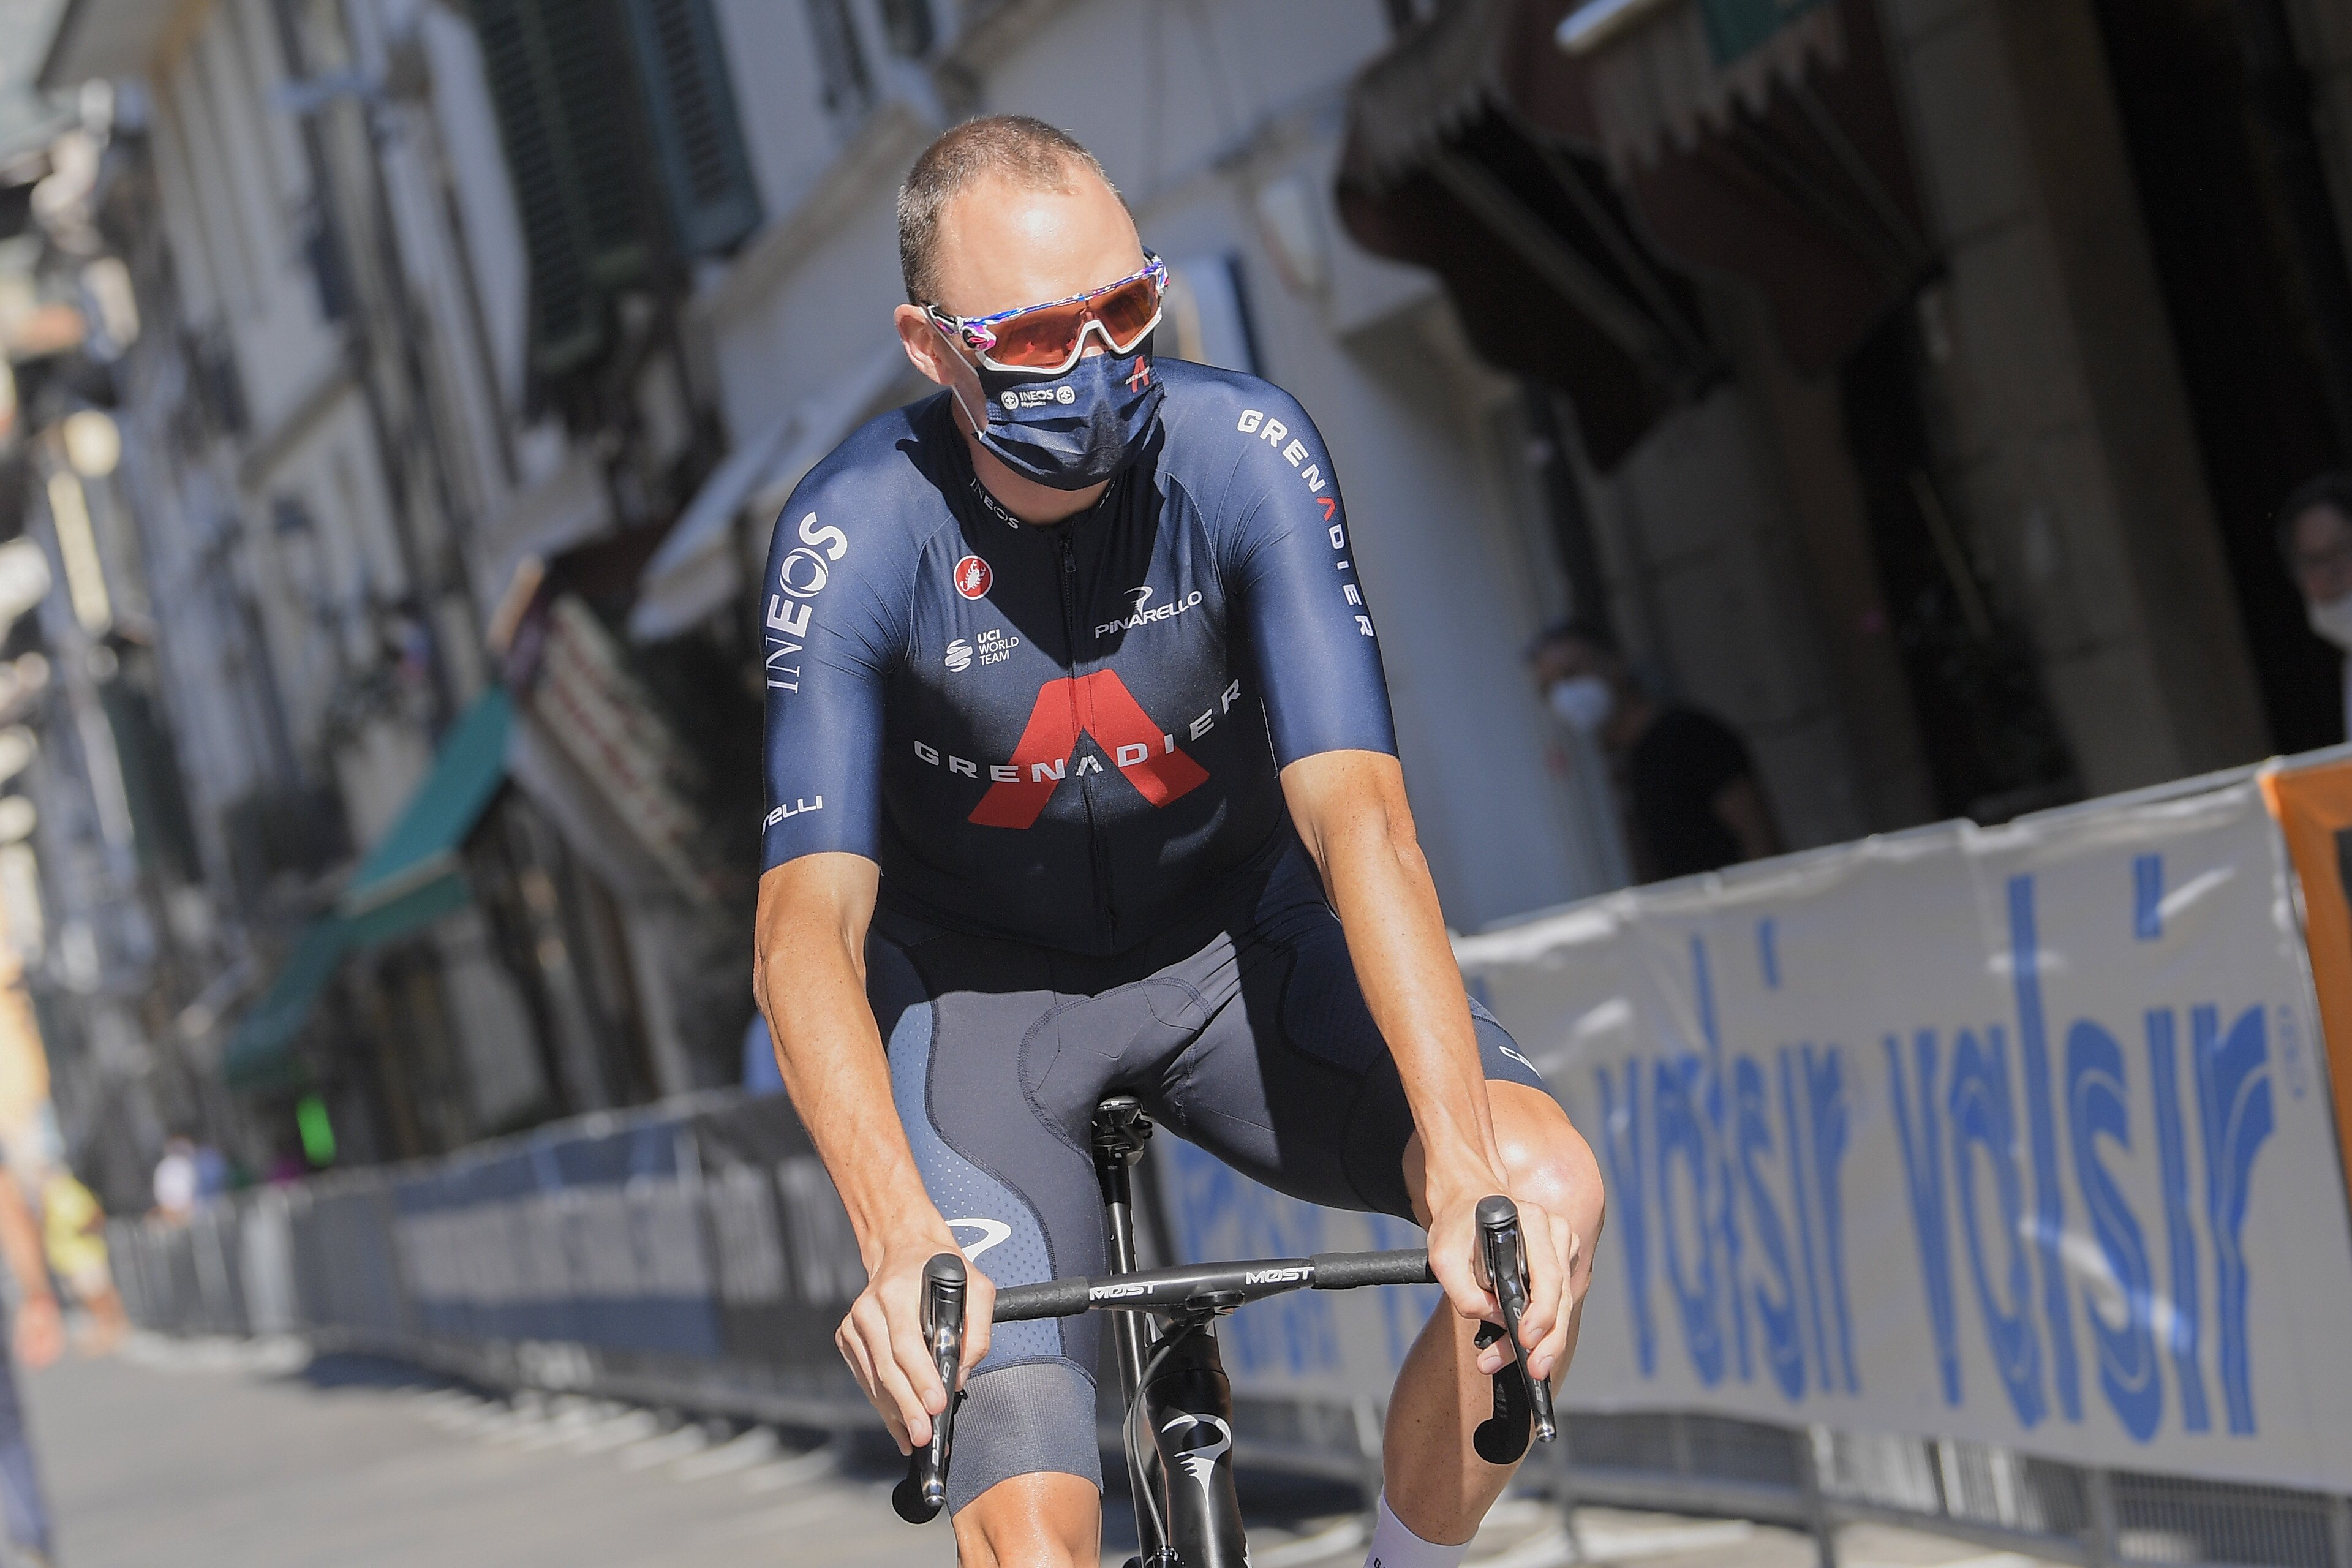 Chris Froome already out of overall contention as Primoz Roglic wins mountainous opening stage of Vuelta